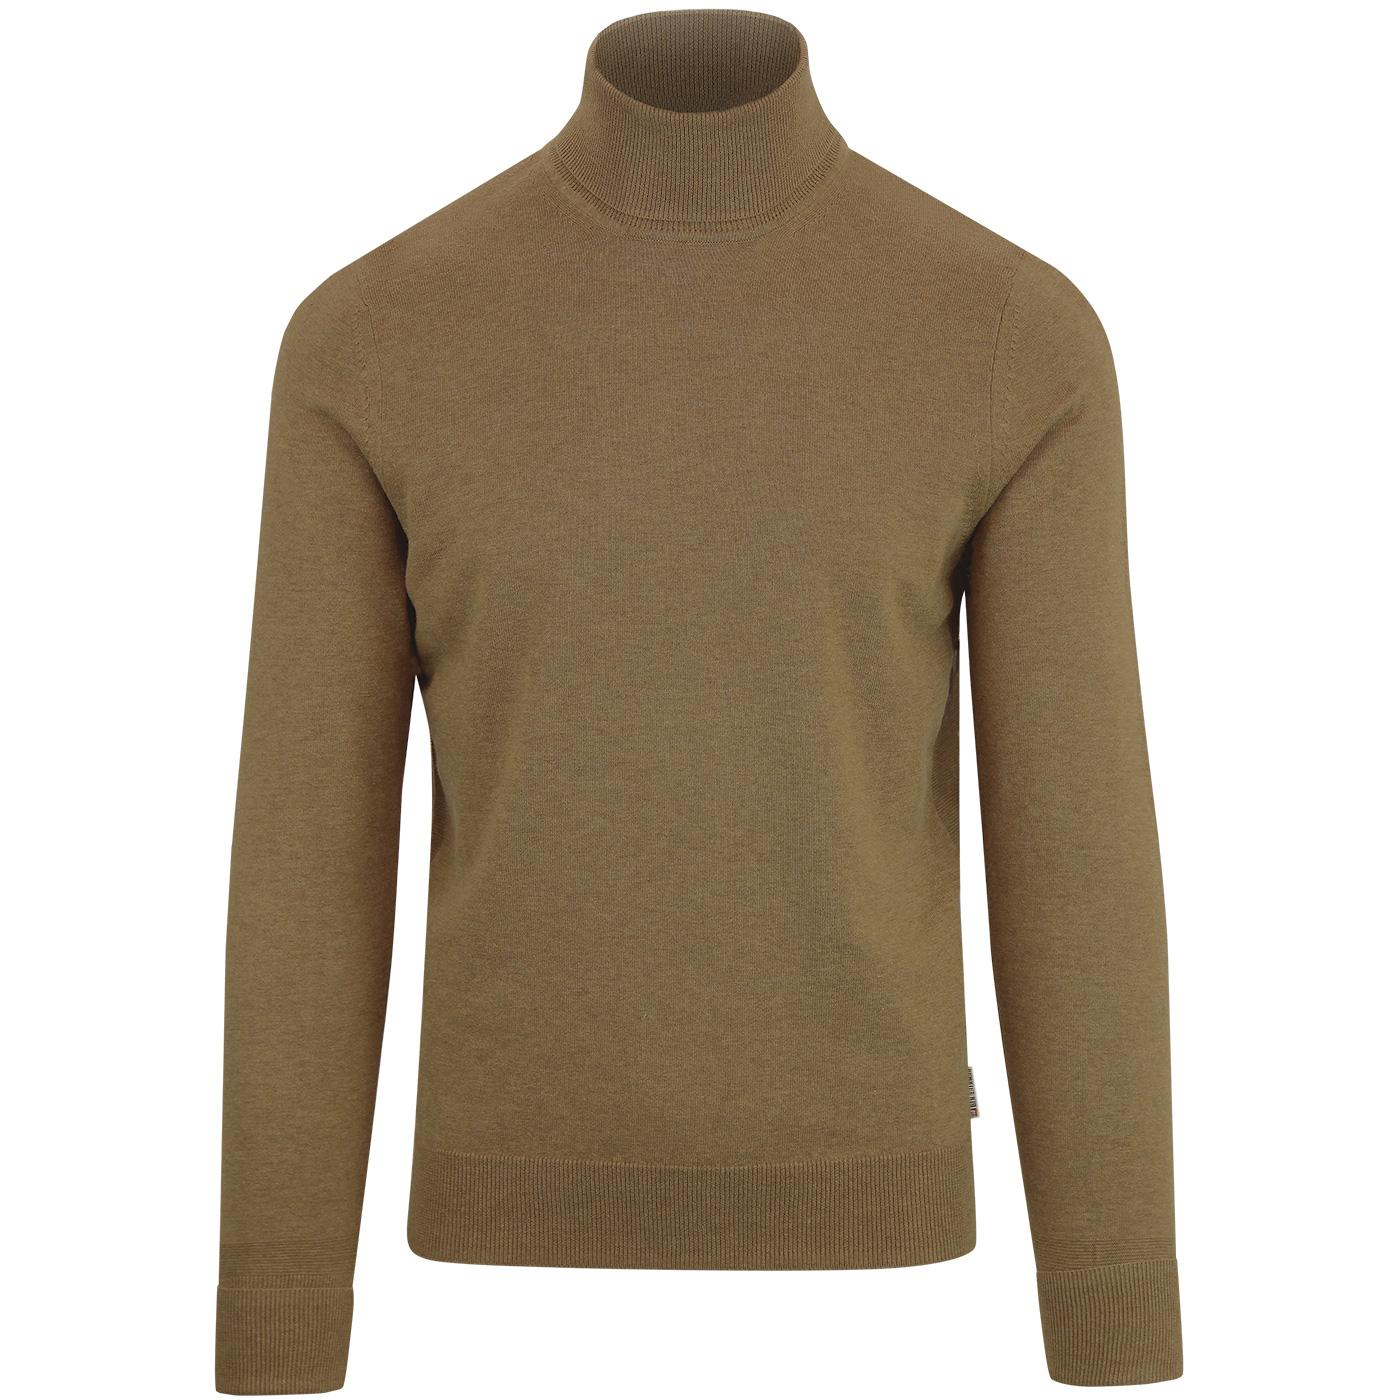 BEN SHERMAN Retro 60s Mod Roll Neck Jumper CAMEL